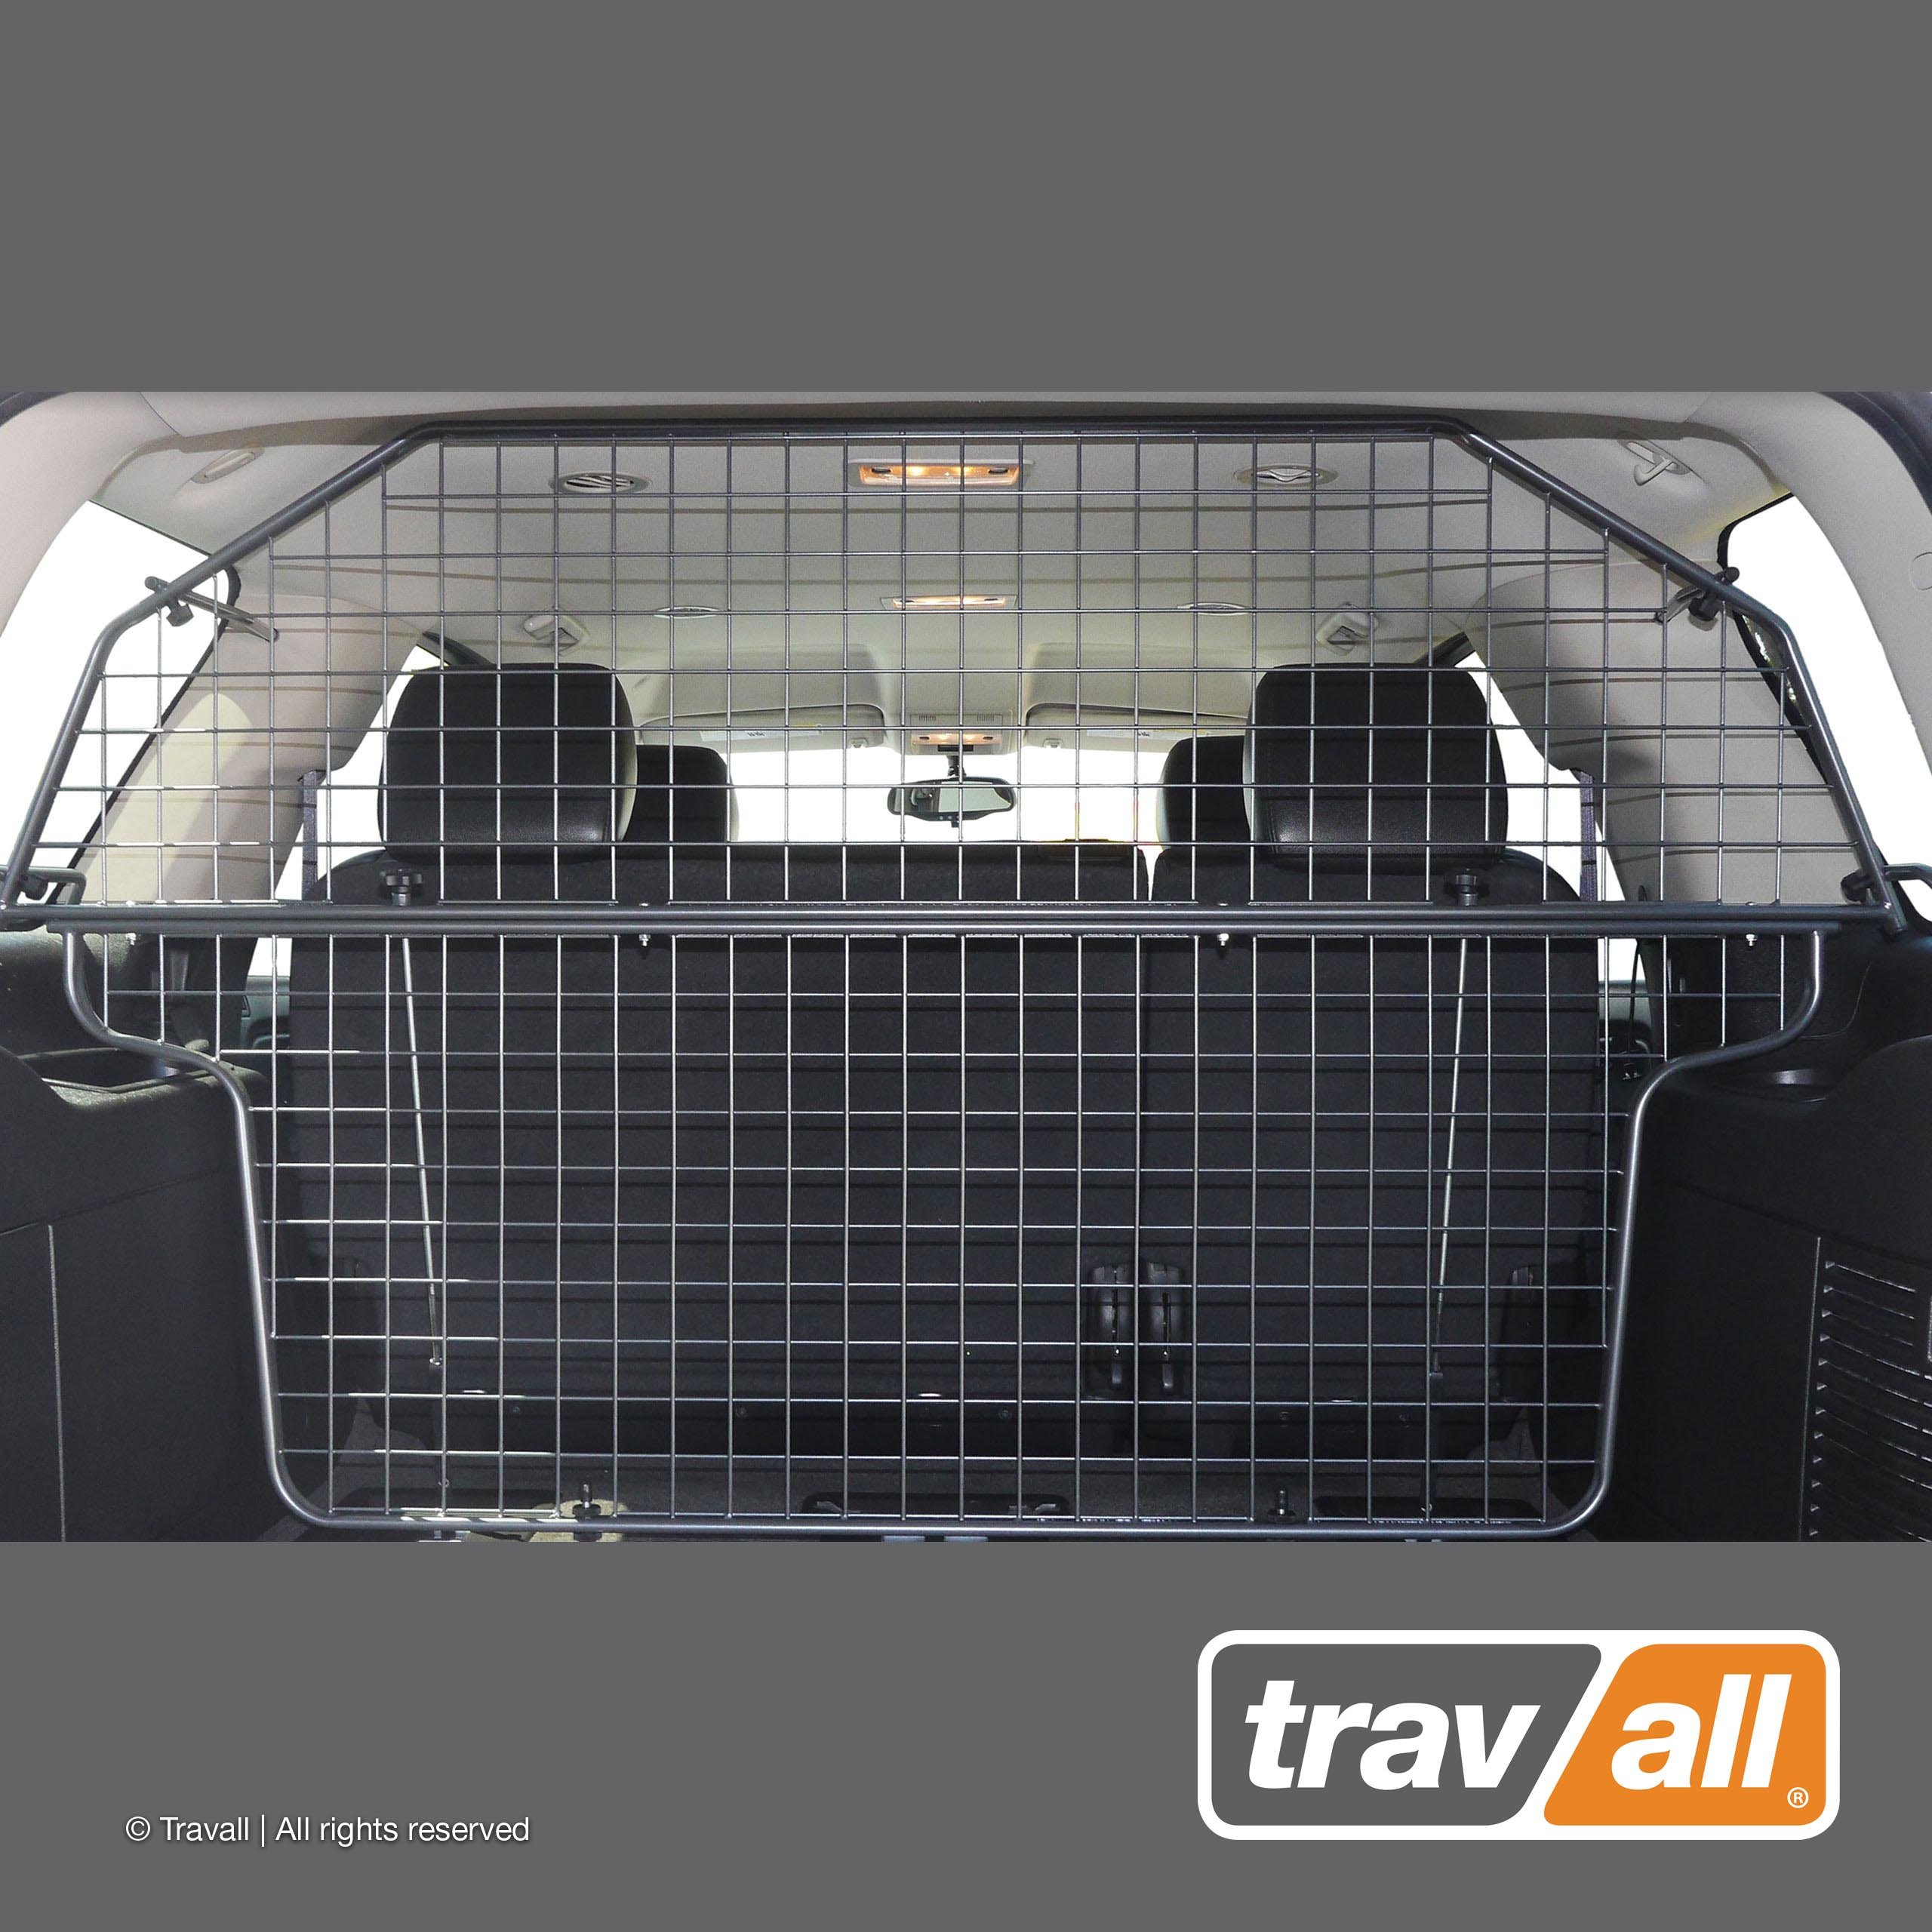 Travall Guard Compatible with Chevrolet Tahoe (2007-2010) Also for GMC Yukon (2006-2014)- Original Guard TDG1434 - Rattle-Free Steel Pet Barrier